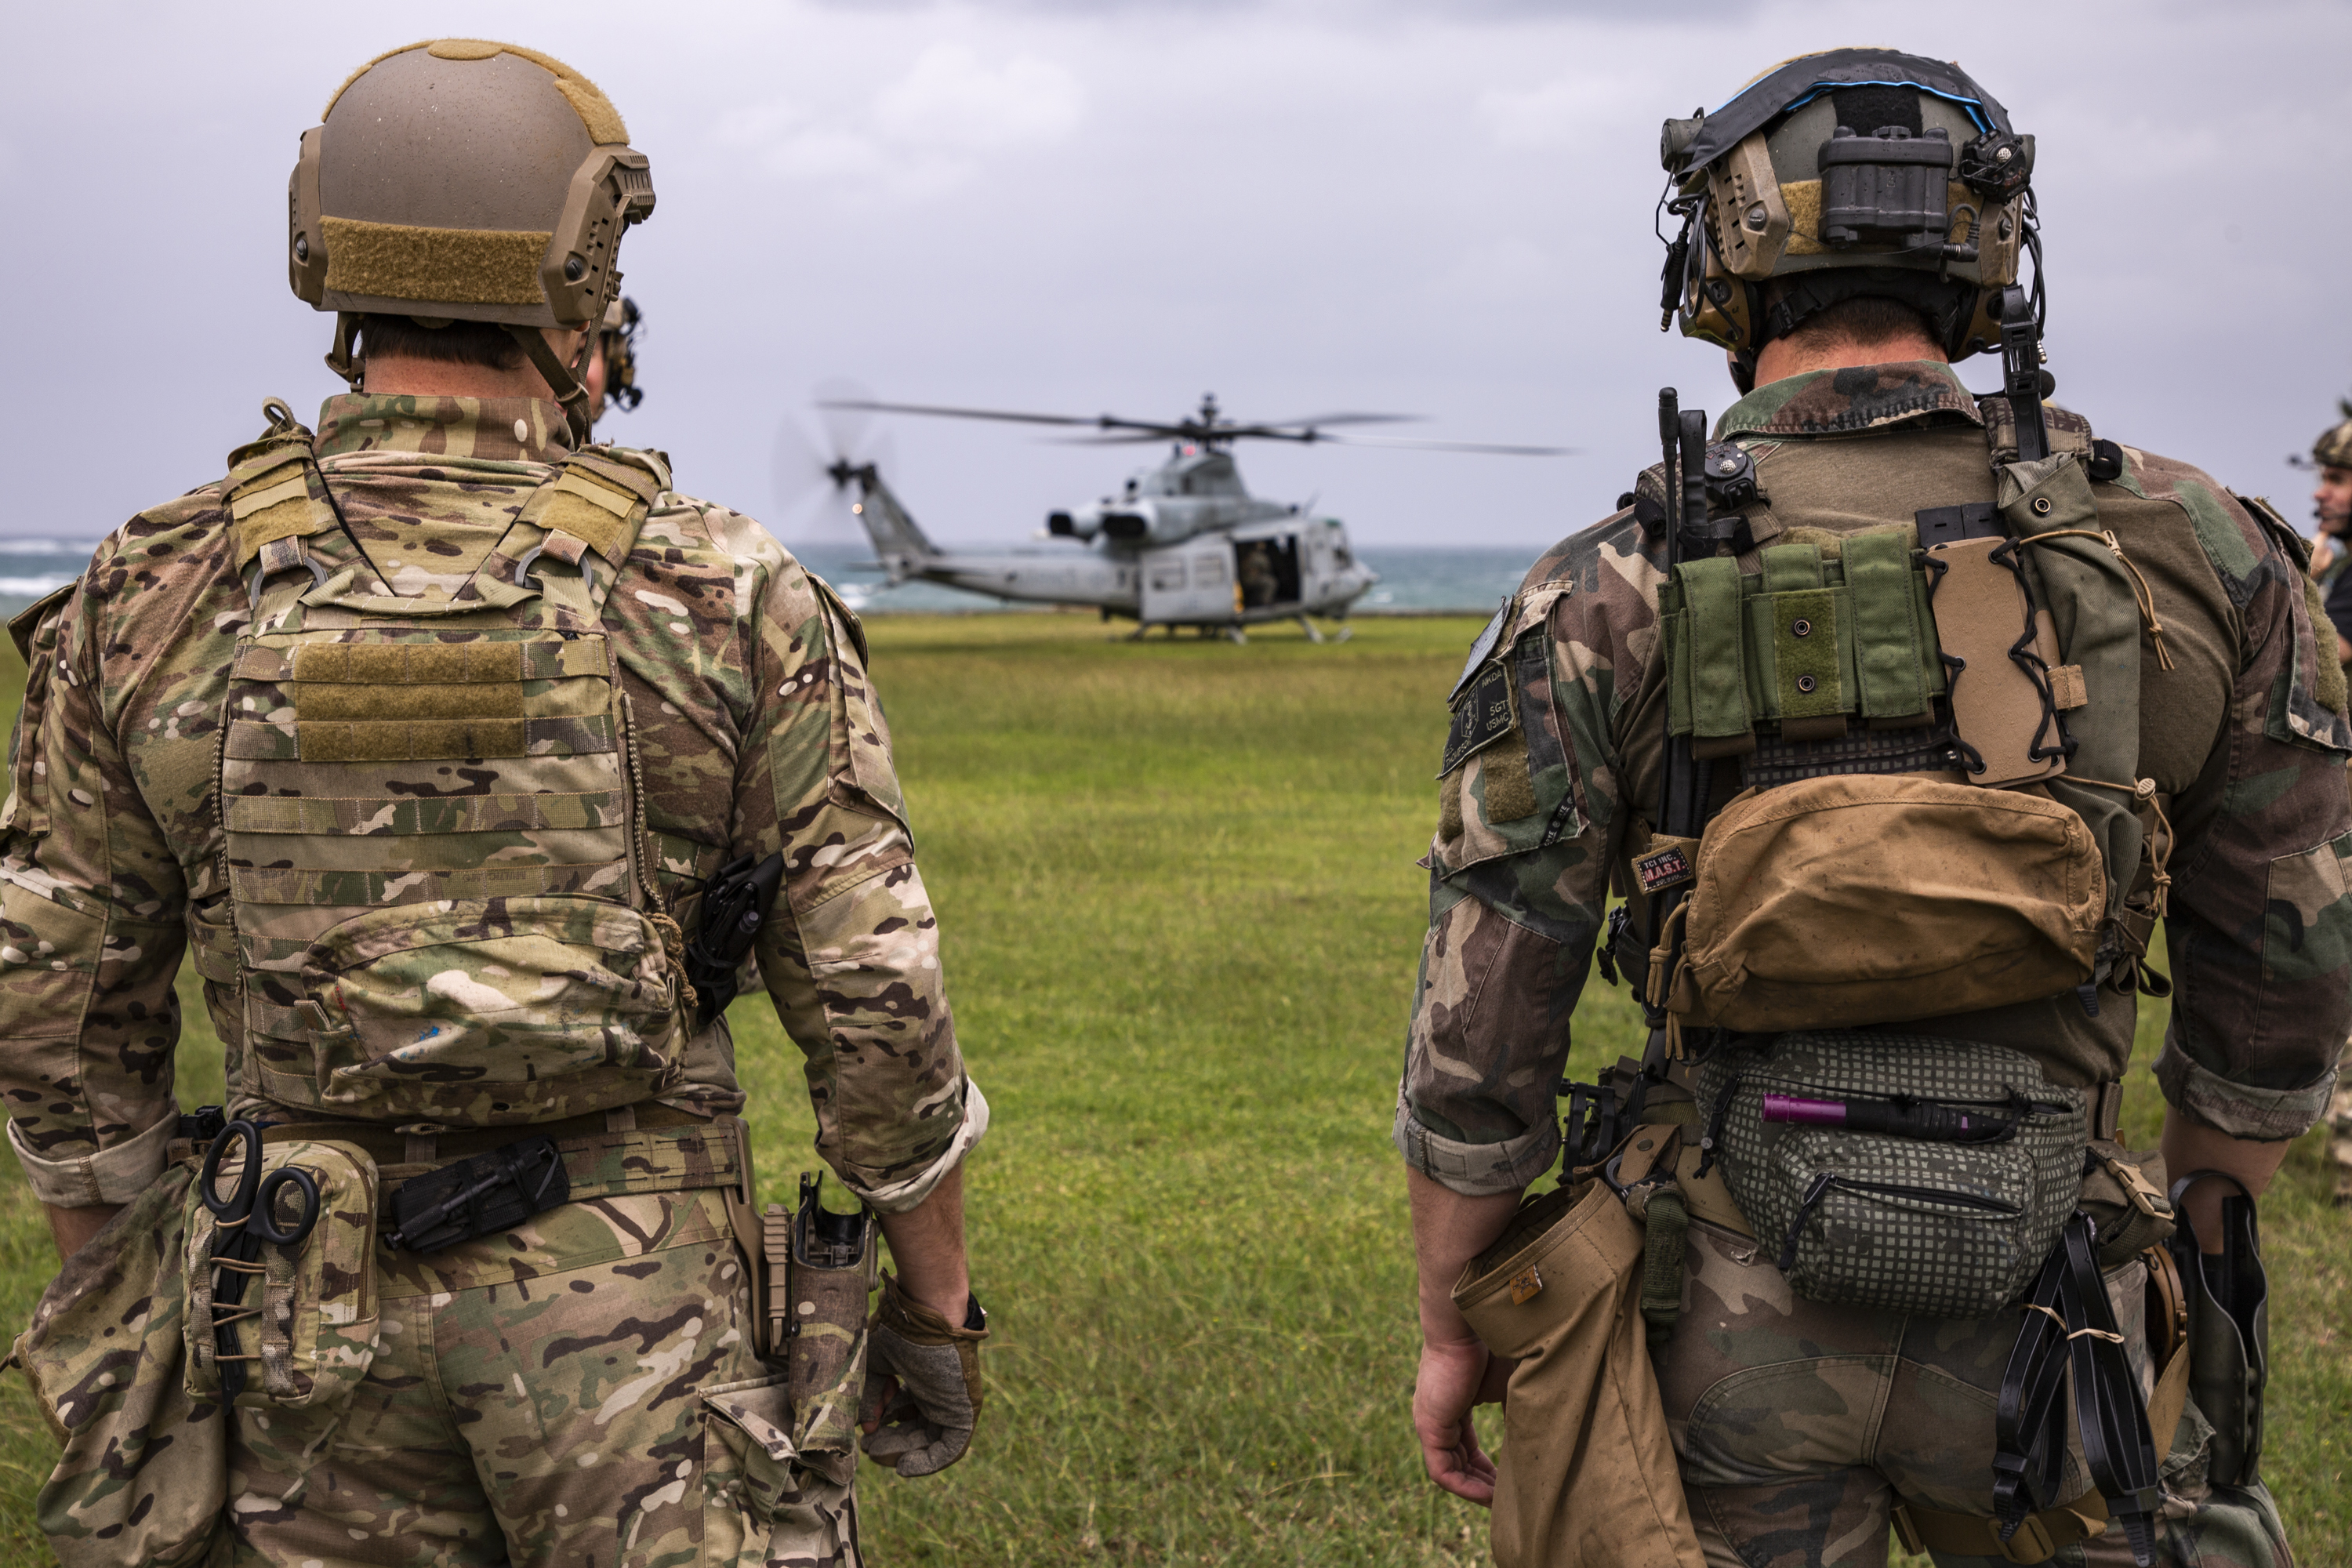 U.S. Army Soldiers with Special Forces Group 1-1 and Marines from 3rd Marine Raider Battalion with Marine Light Attack Helicopter Squadron 469 (HMLA-469), conduct casualty evacuation drills at Torii Station, Okinawa, Japan, Oct. 23, 2020. This training maintains readiness, combat proficiency and enhances interoperability essential for joint and combined military operations in austere, expeditionary environments within the Indo-Pacific. (U.S. Marine Corps photo by Lance Cpl. Dalton J. Payne)